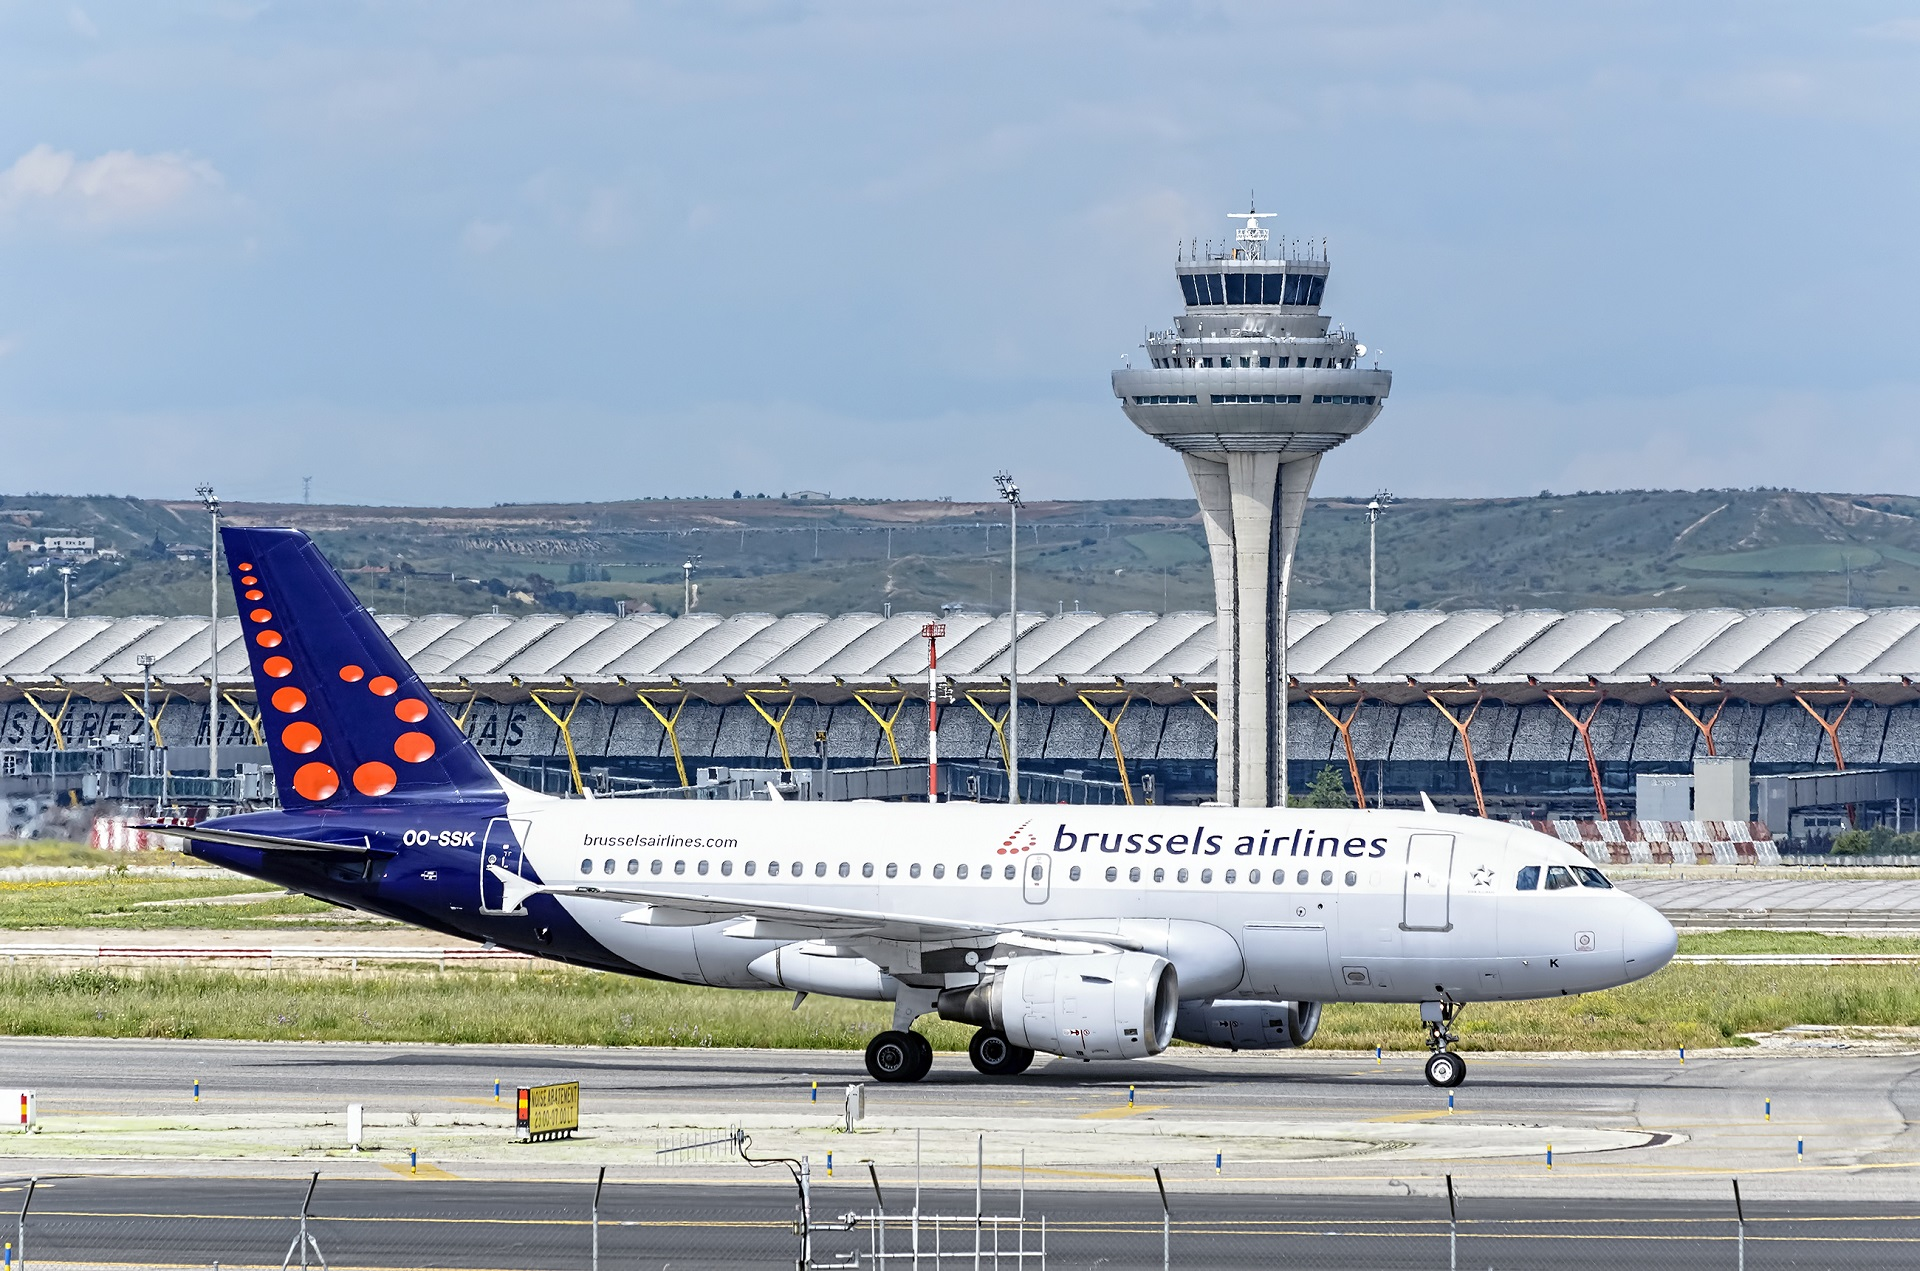 Brussels Airlines compensation for diverted flight